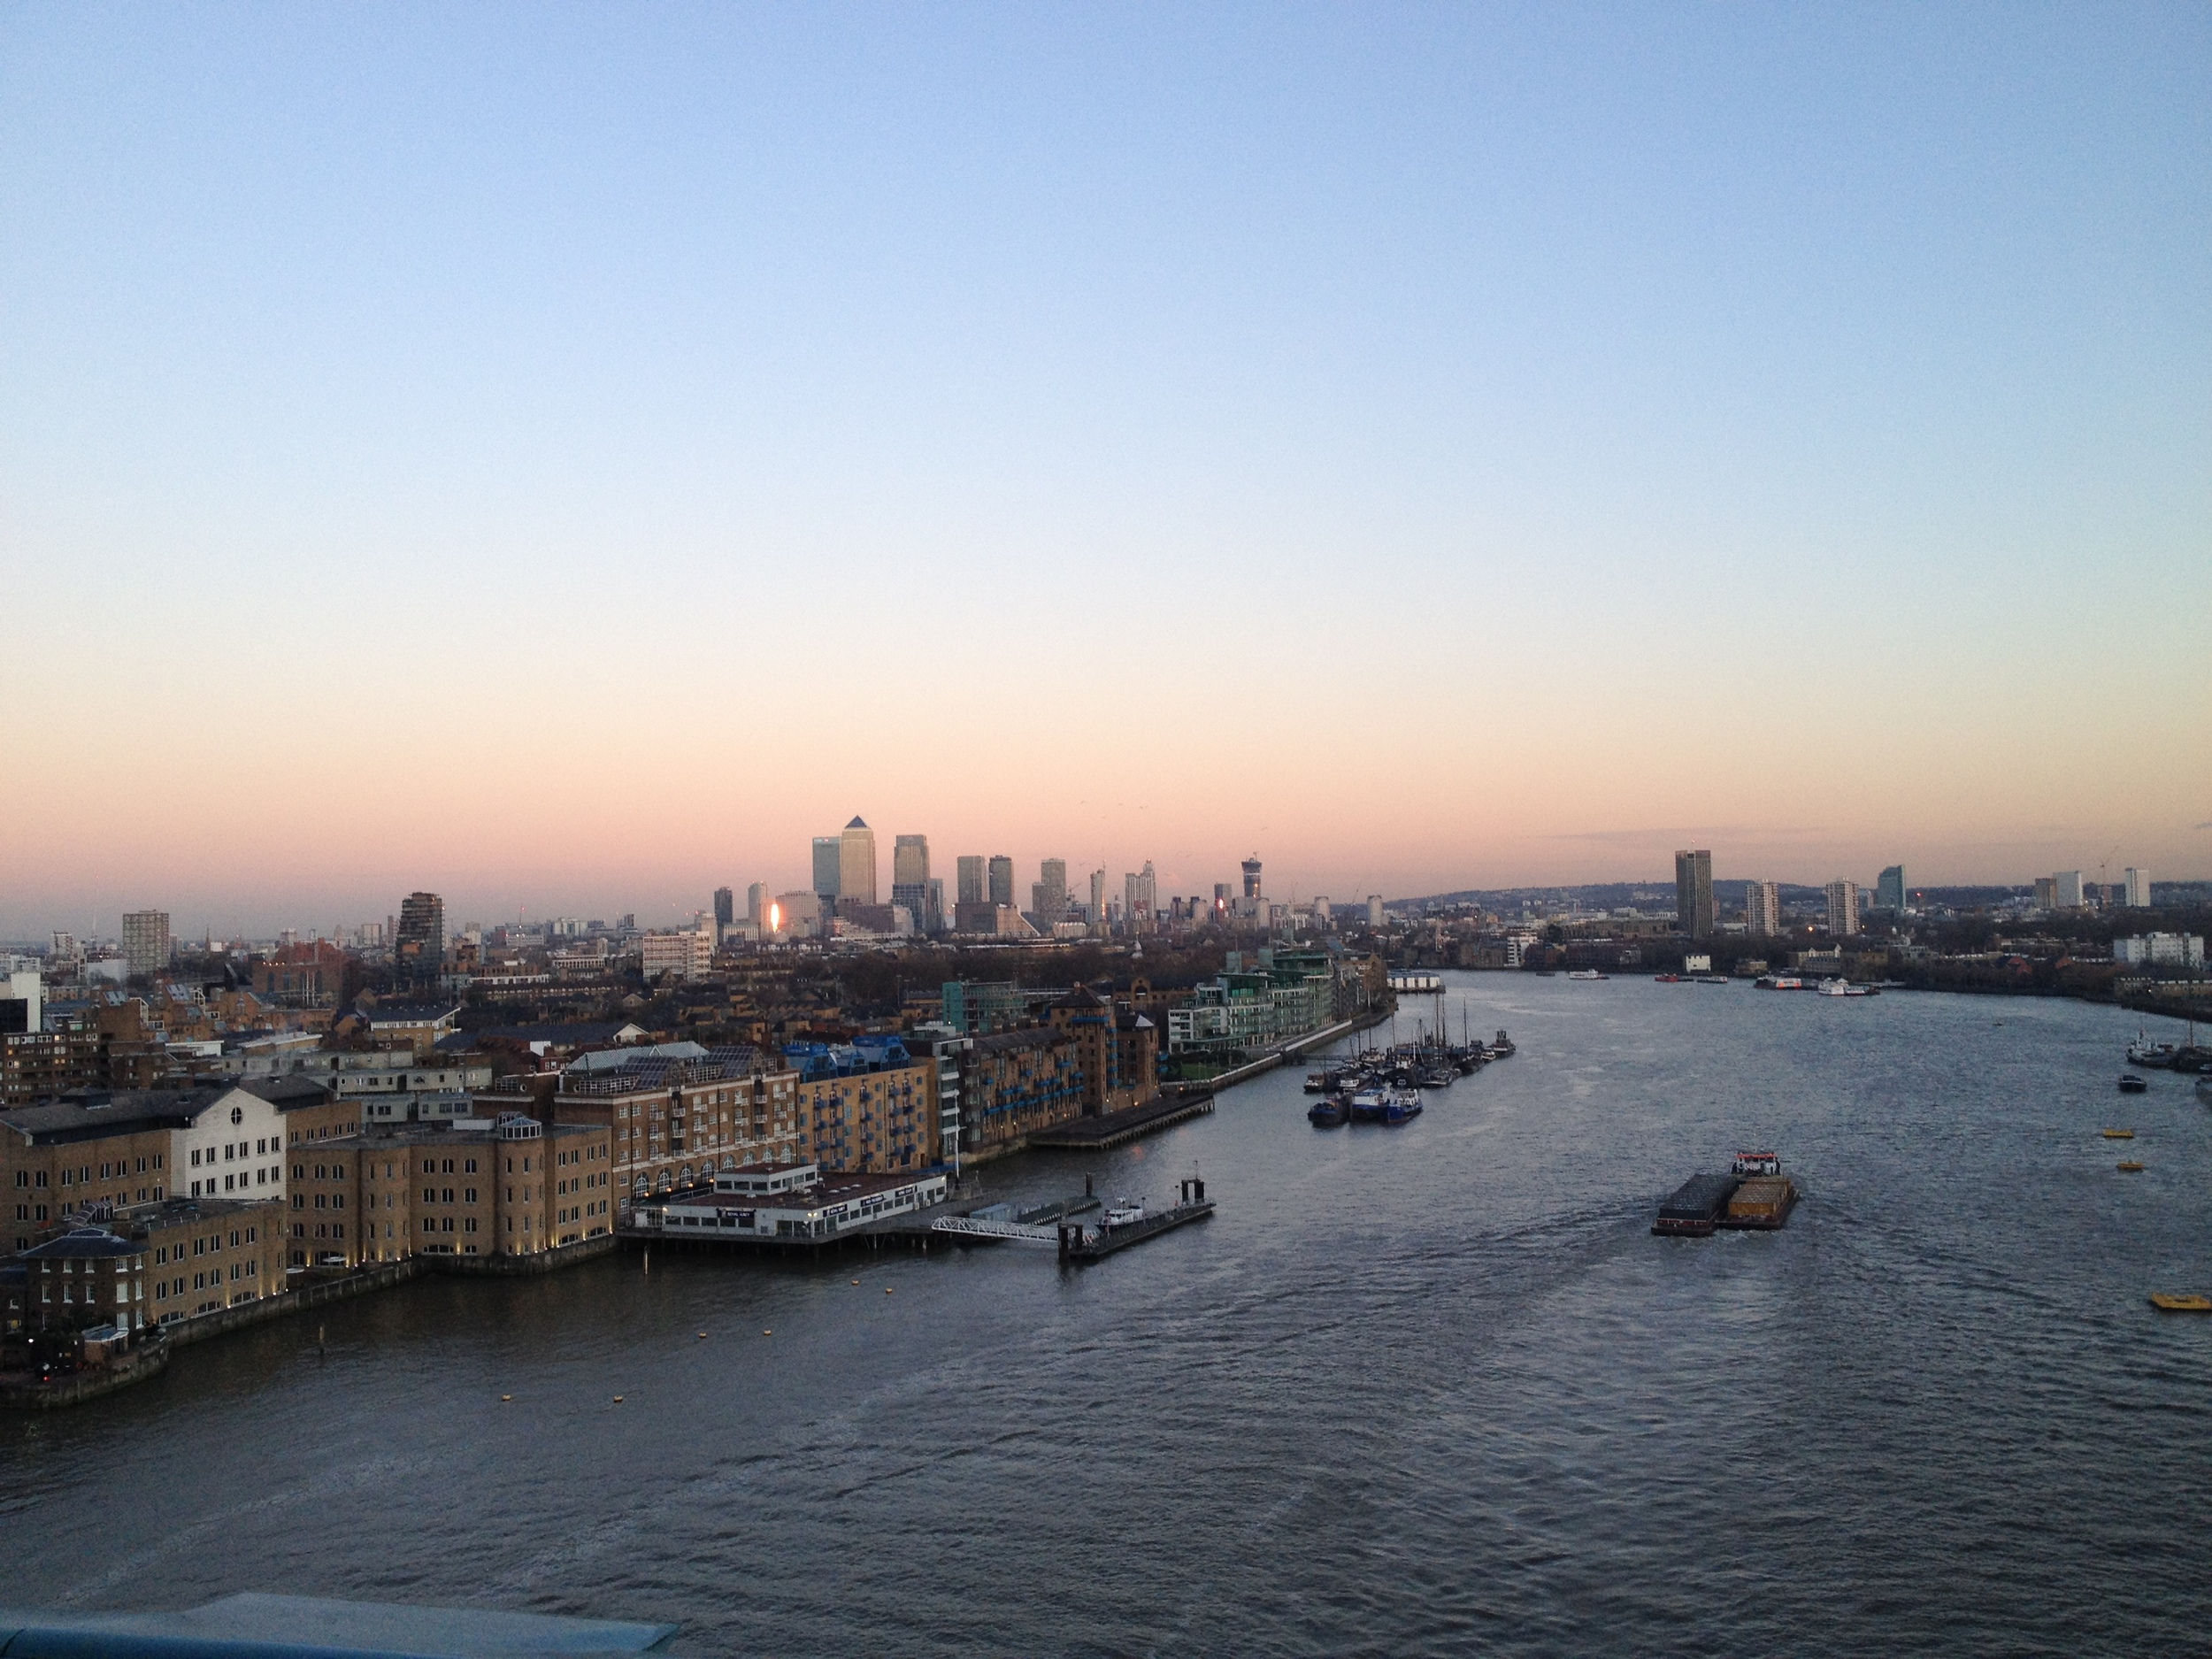 A view from Tower Bridge looking out across the Thames towards the financial hub of London